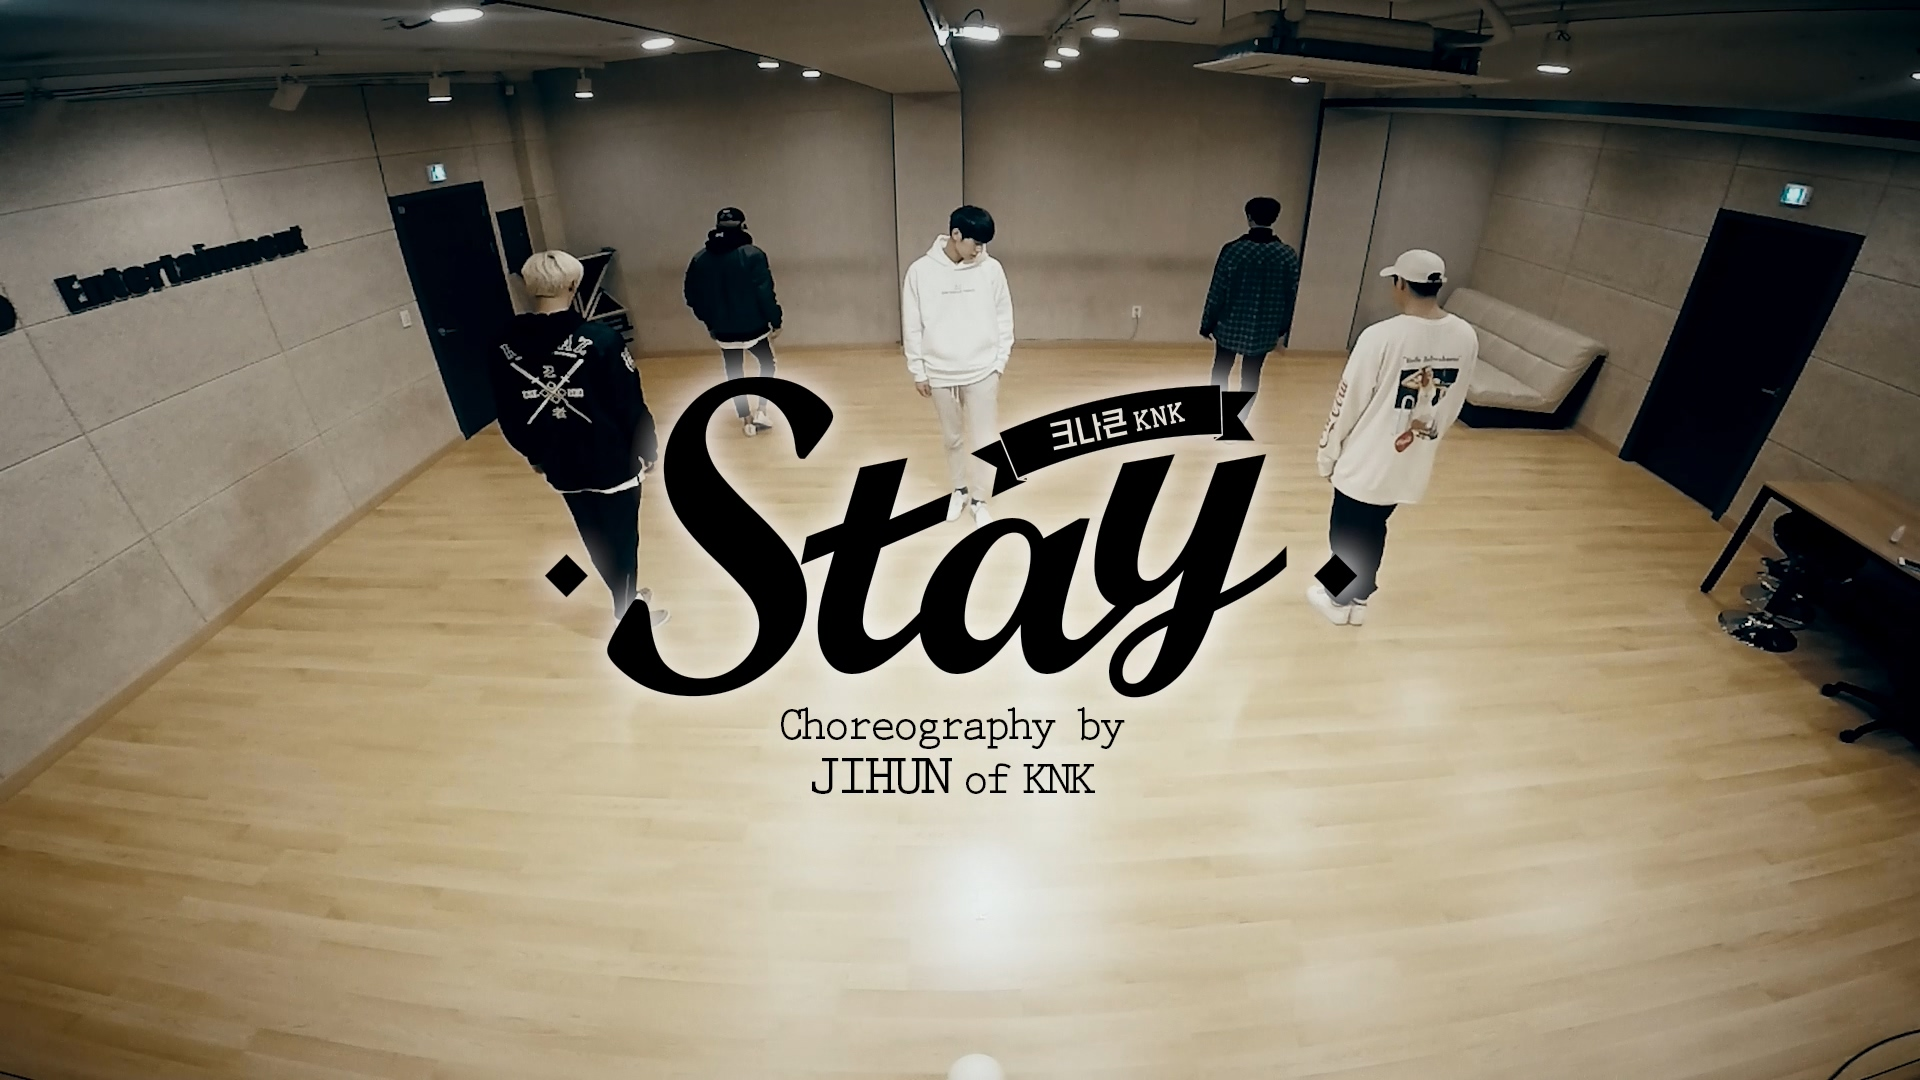 [안무영상] 크나큰(KNK) - Stay / Choreography by 지훈 (JIHUN of KNK)